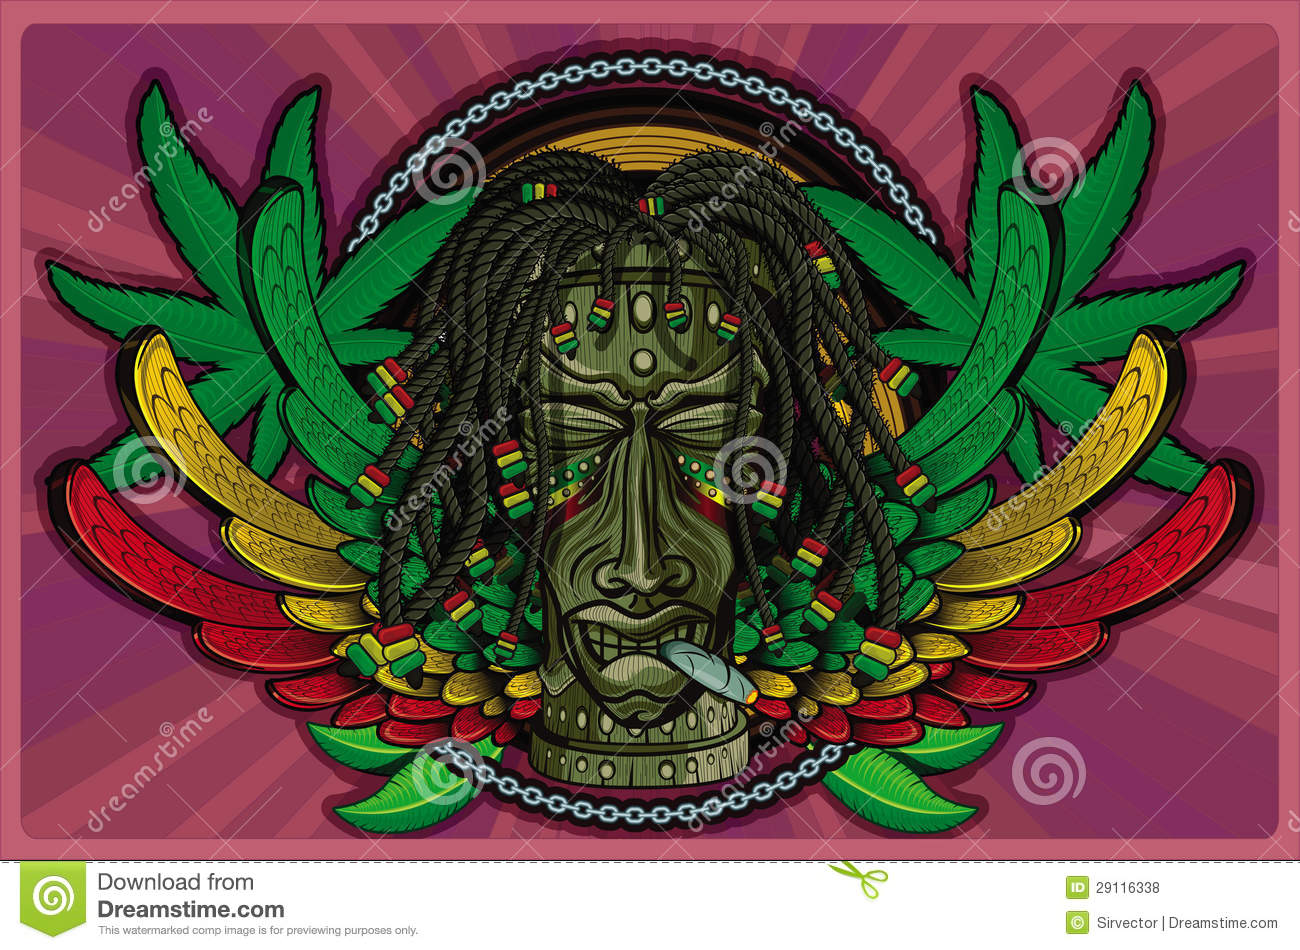 Rasta tiki wooden masks with human features and cigar wings in the